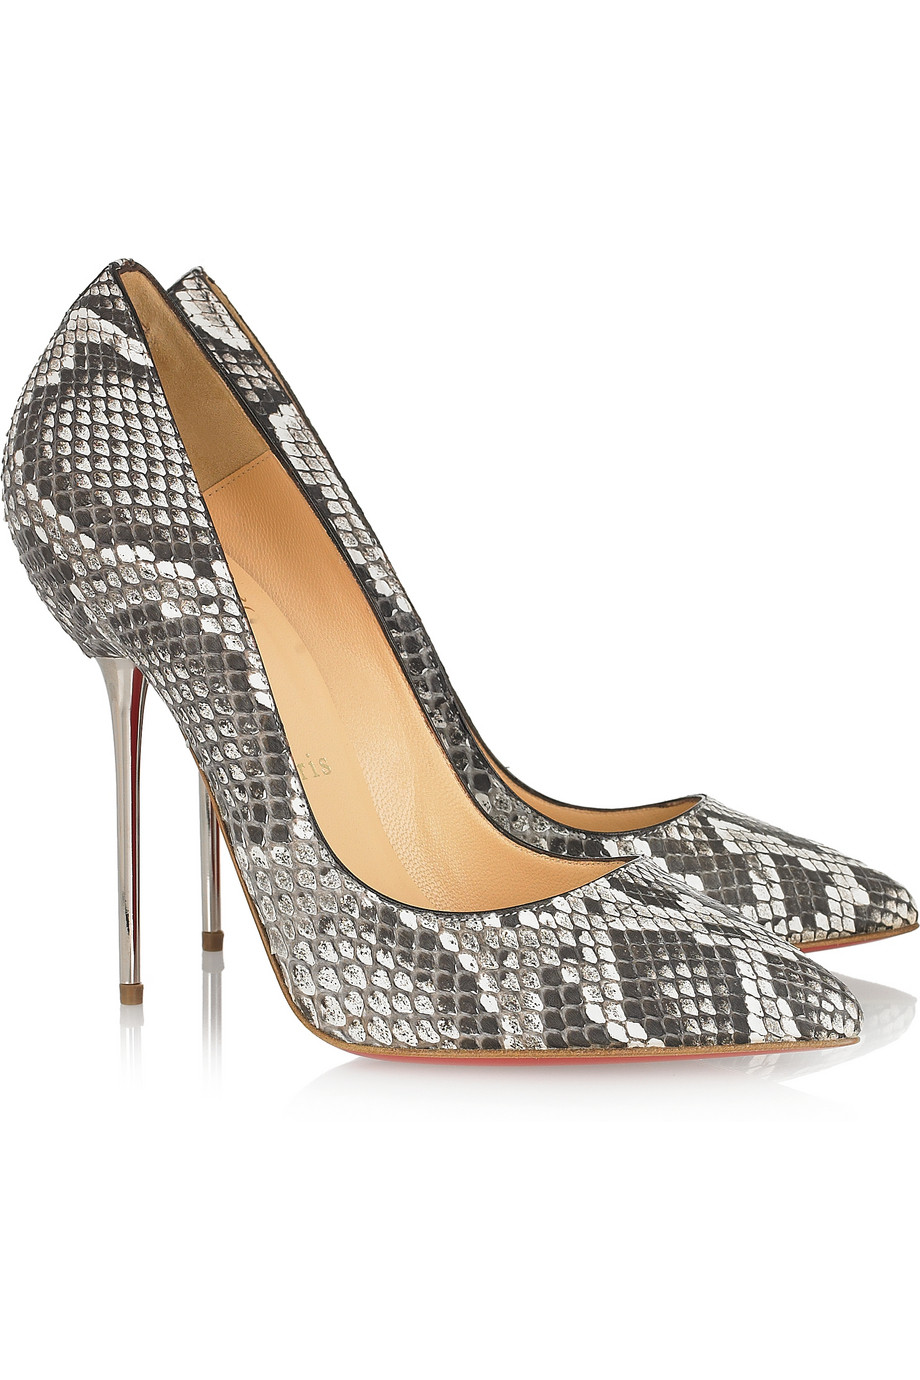 Shoes To Kill And Die For Ep 454 The Fashionbrides